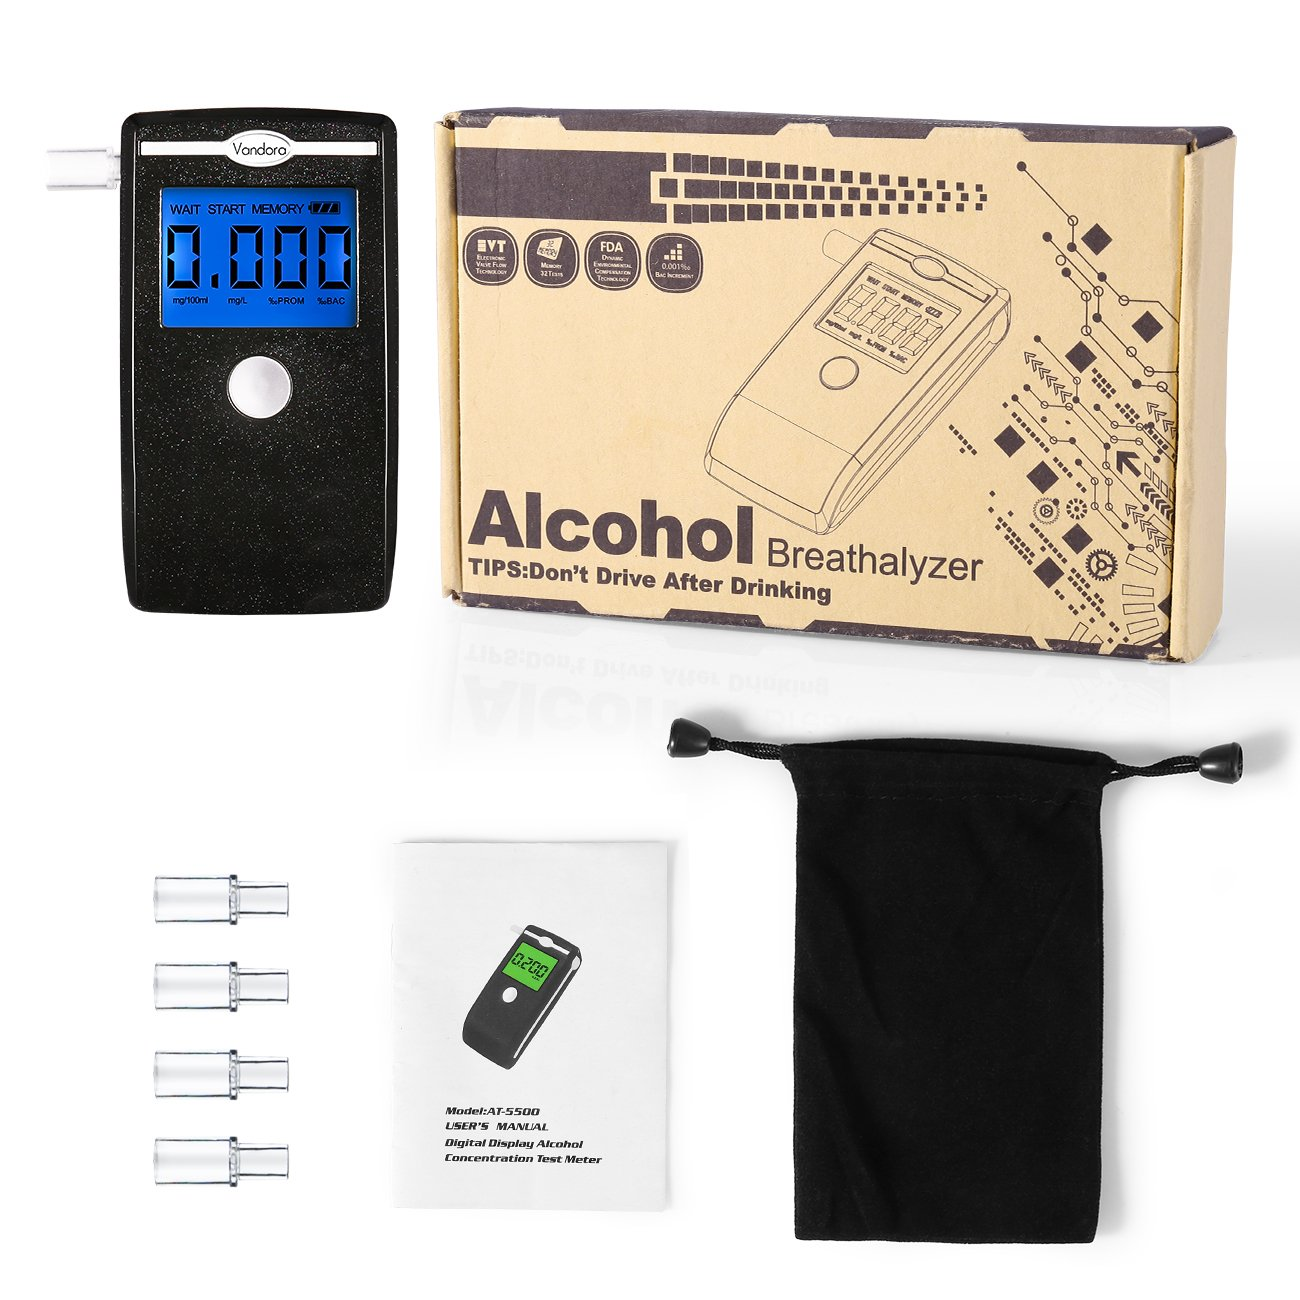 Breathalyzer Fannel Portable Breath Alcohol Tester Led Concentration Test Circuit Screen With Mouthpieces For Home Use 2018 New Black Health Personal Care